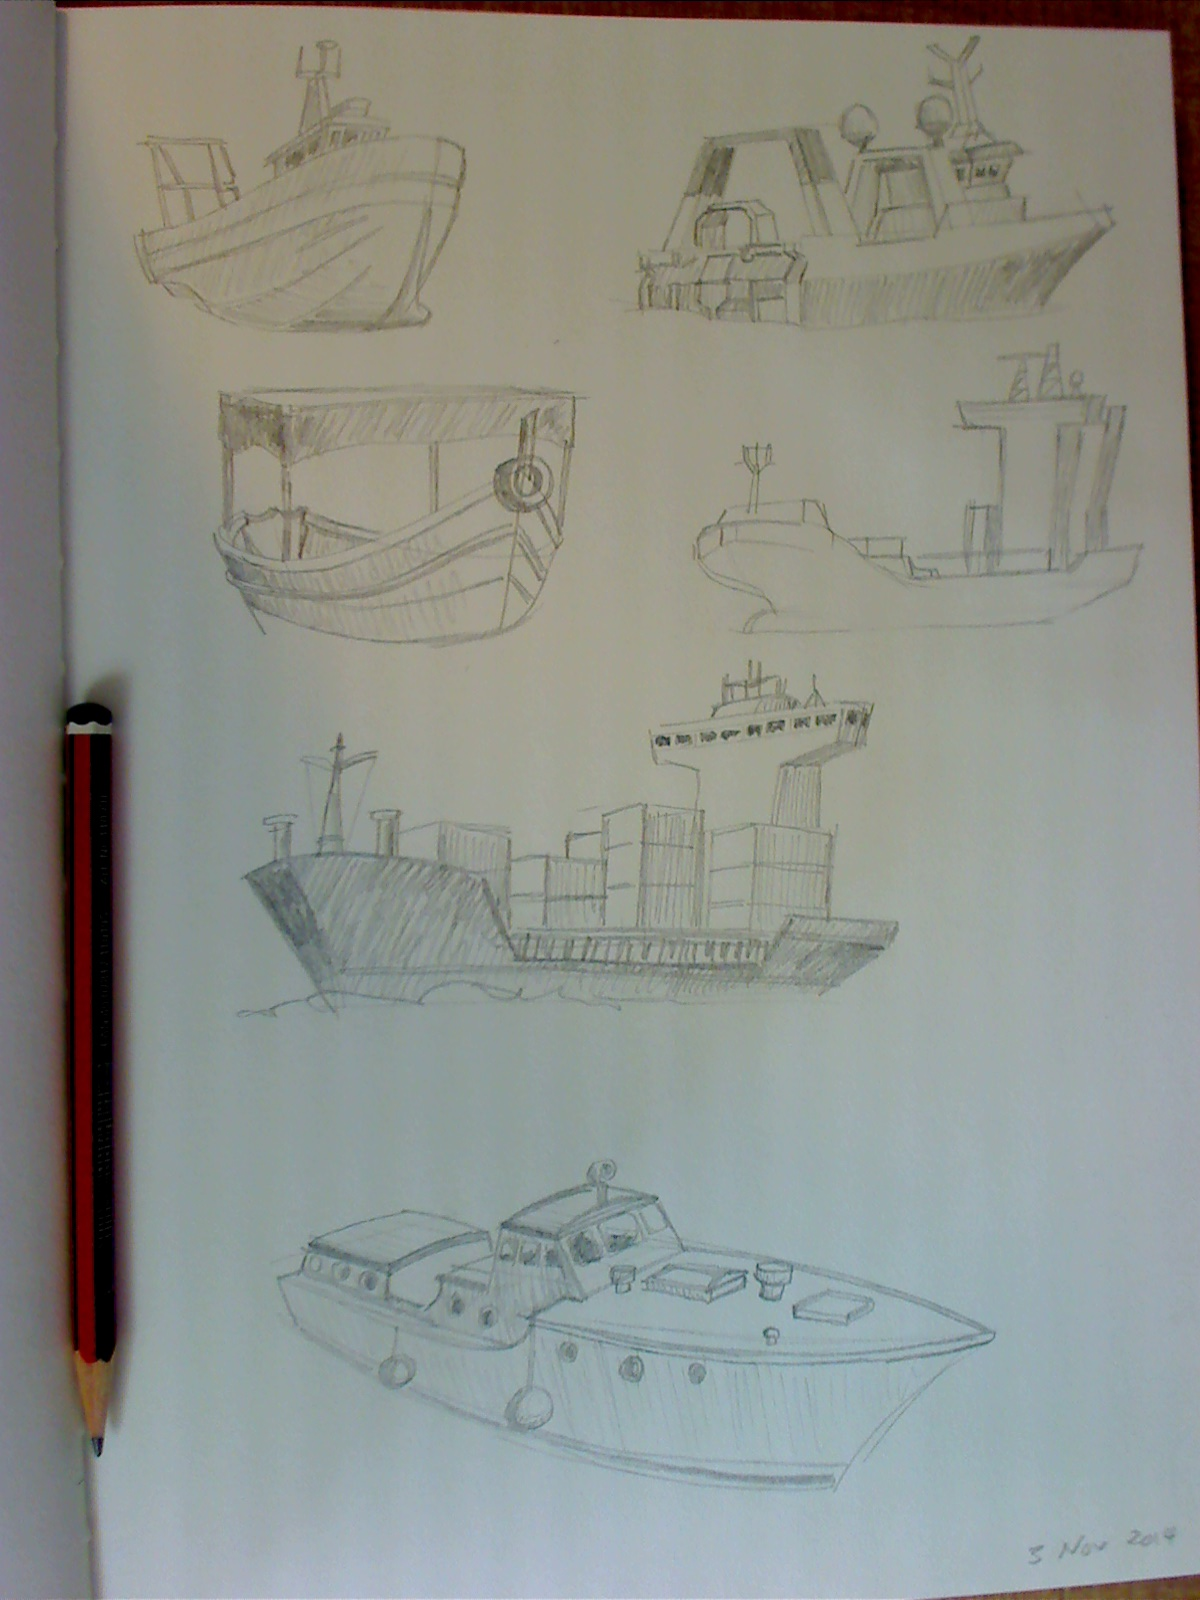 Sketchbook drawings of boats